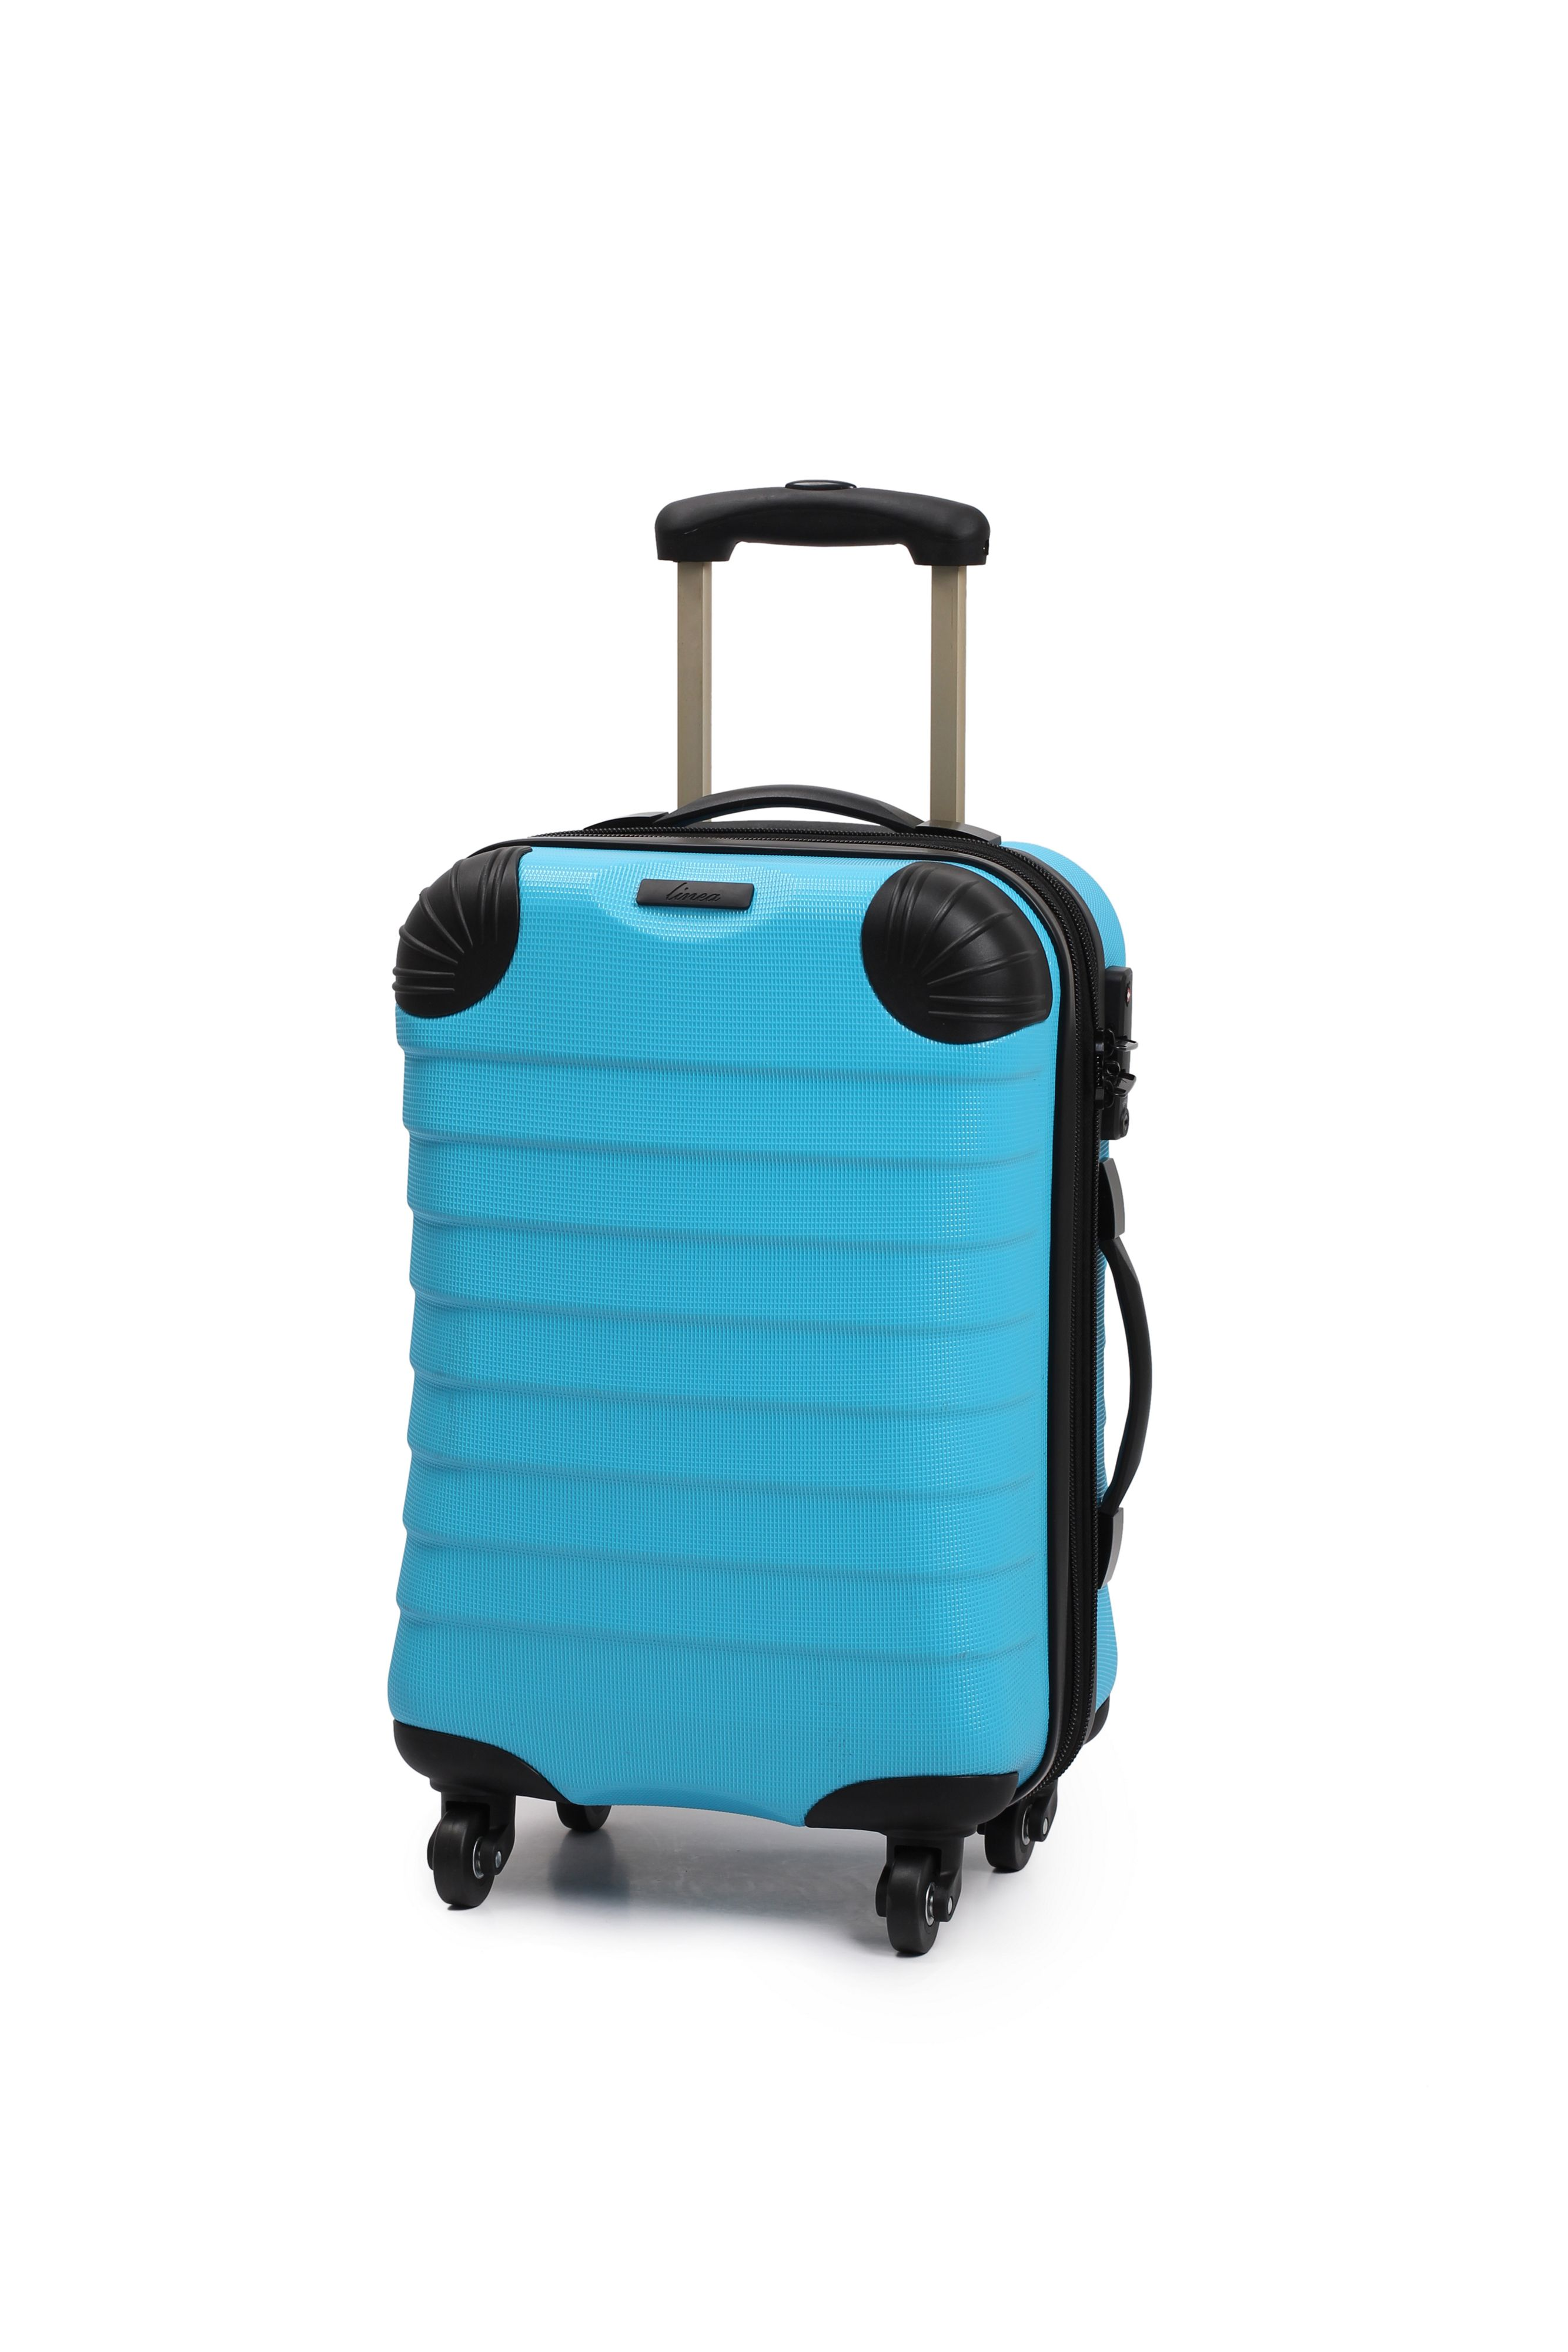 Linea Shell aqua 4 wheel hard cabin suitcase Aqua